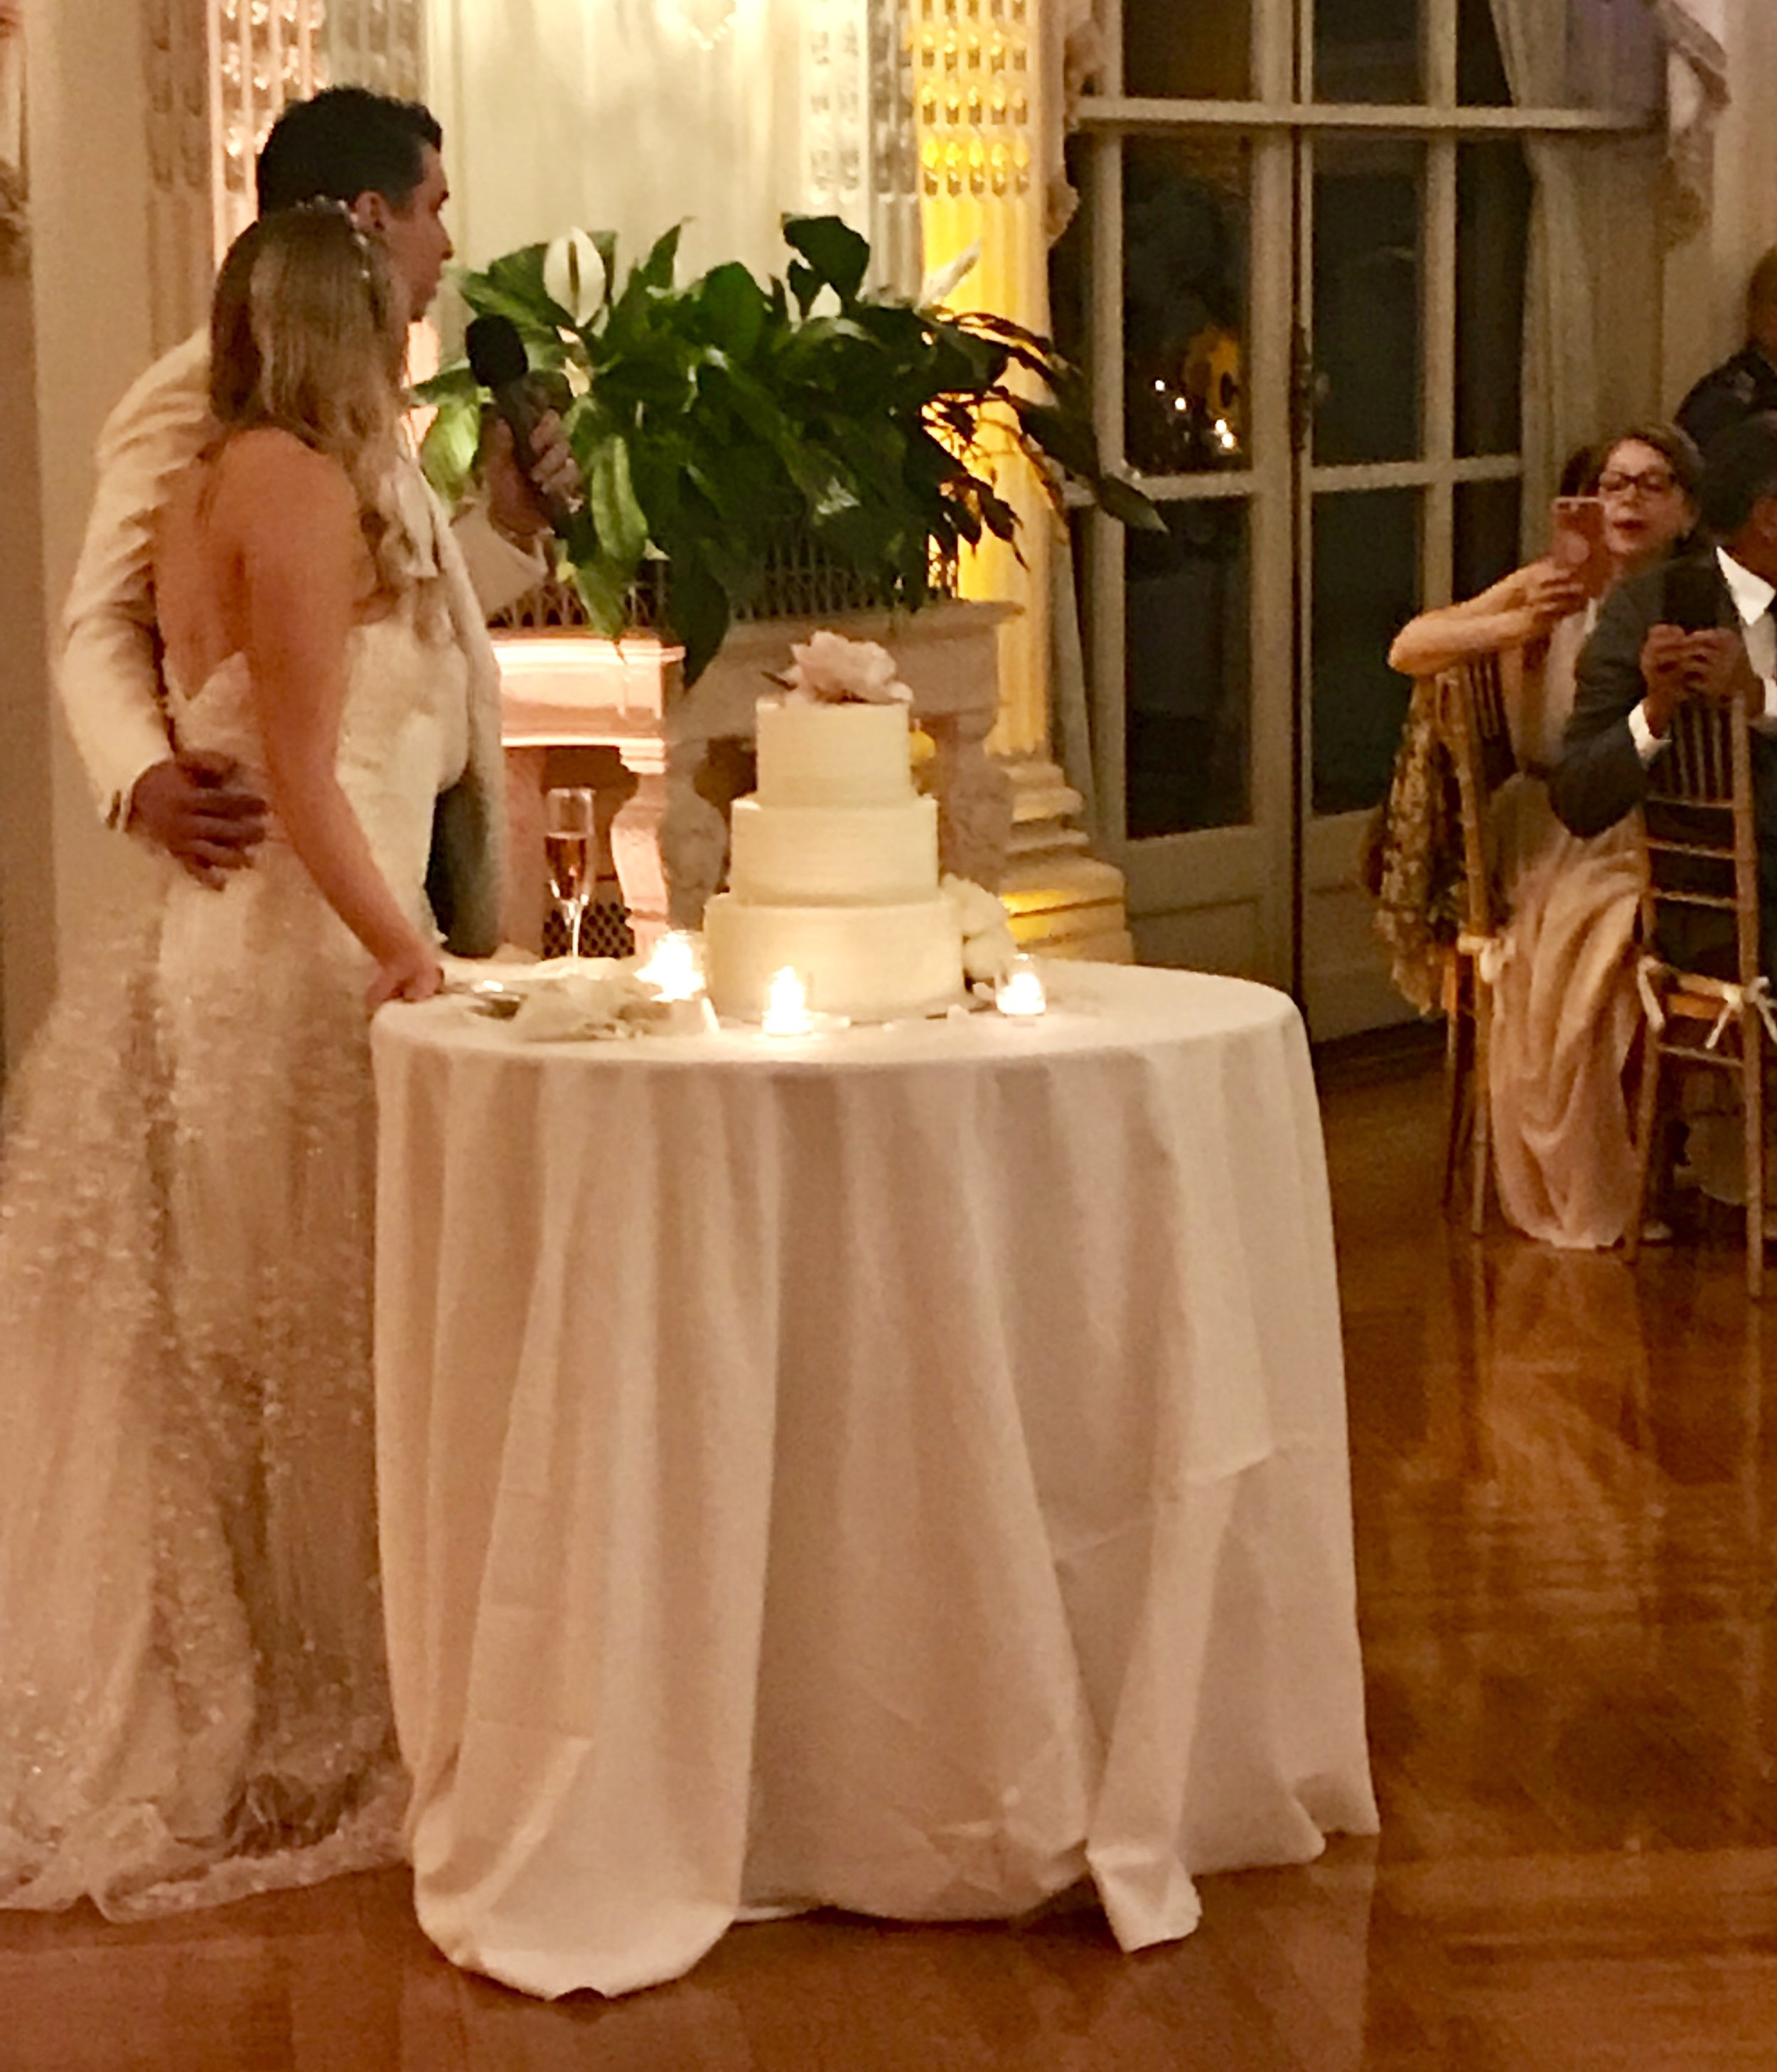 Saturday evening April 13th 2019 DJ Corey Young hosted, provided the music, and wireless led uplighting for this beautiful wedding at Rosecliff Mansion in Newport RI. The Groom and his family were Colombian from Miami FL and the Bride and her family were from Newport RI. It was an elegant night full of great energy and dancing!!!!